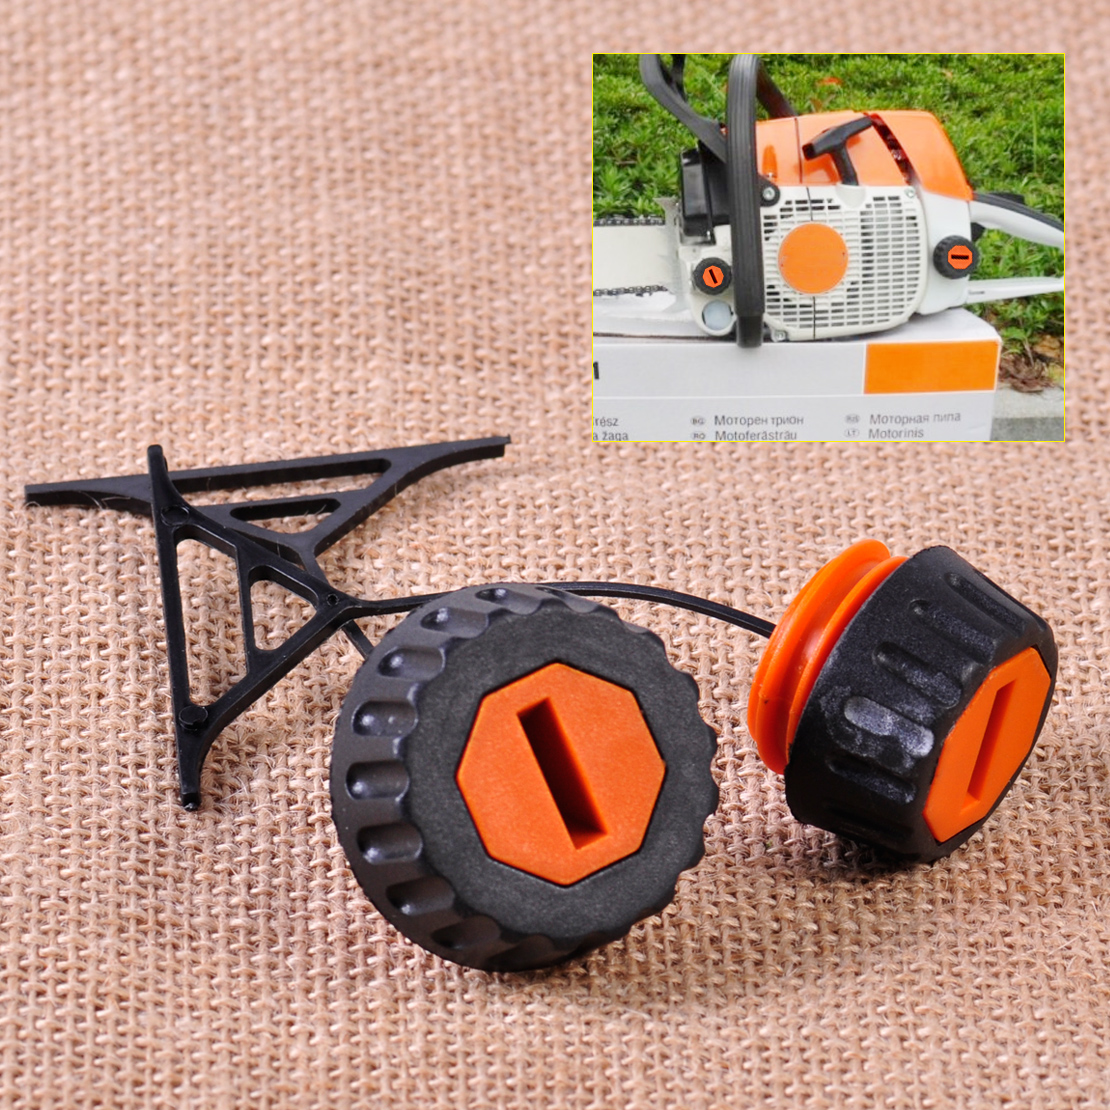 LETAOSK High Quality Gas Fuel Cap & Oil Cap Fit For Stihl 020 021 023 024 025 026 028 034 036 038 048